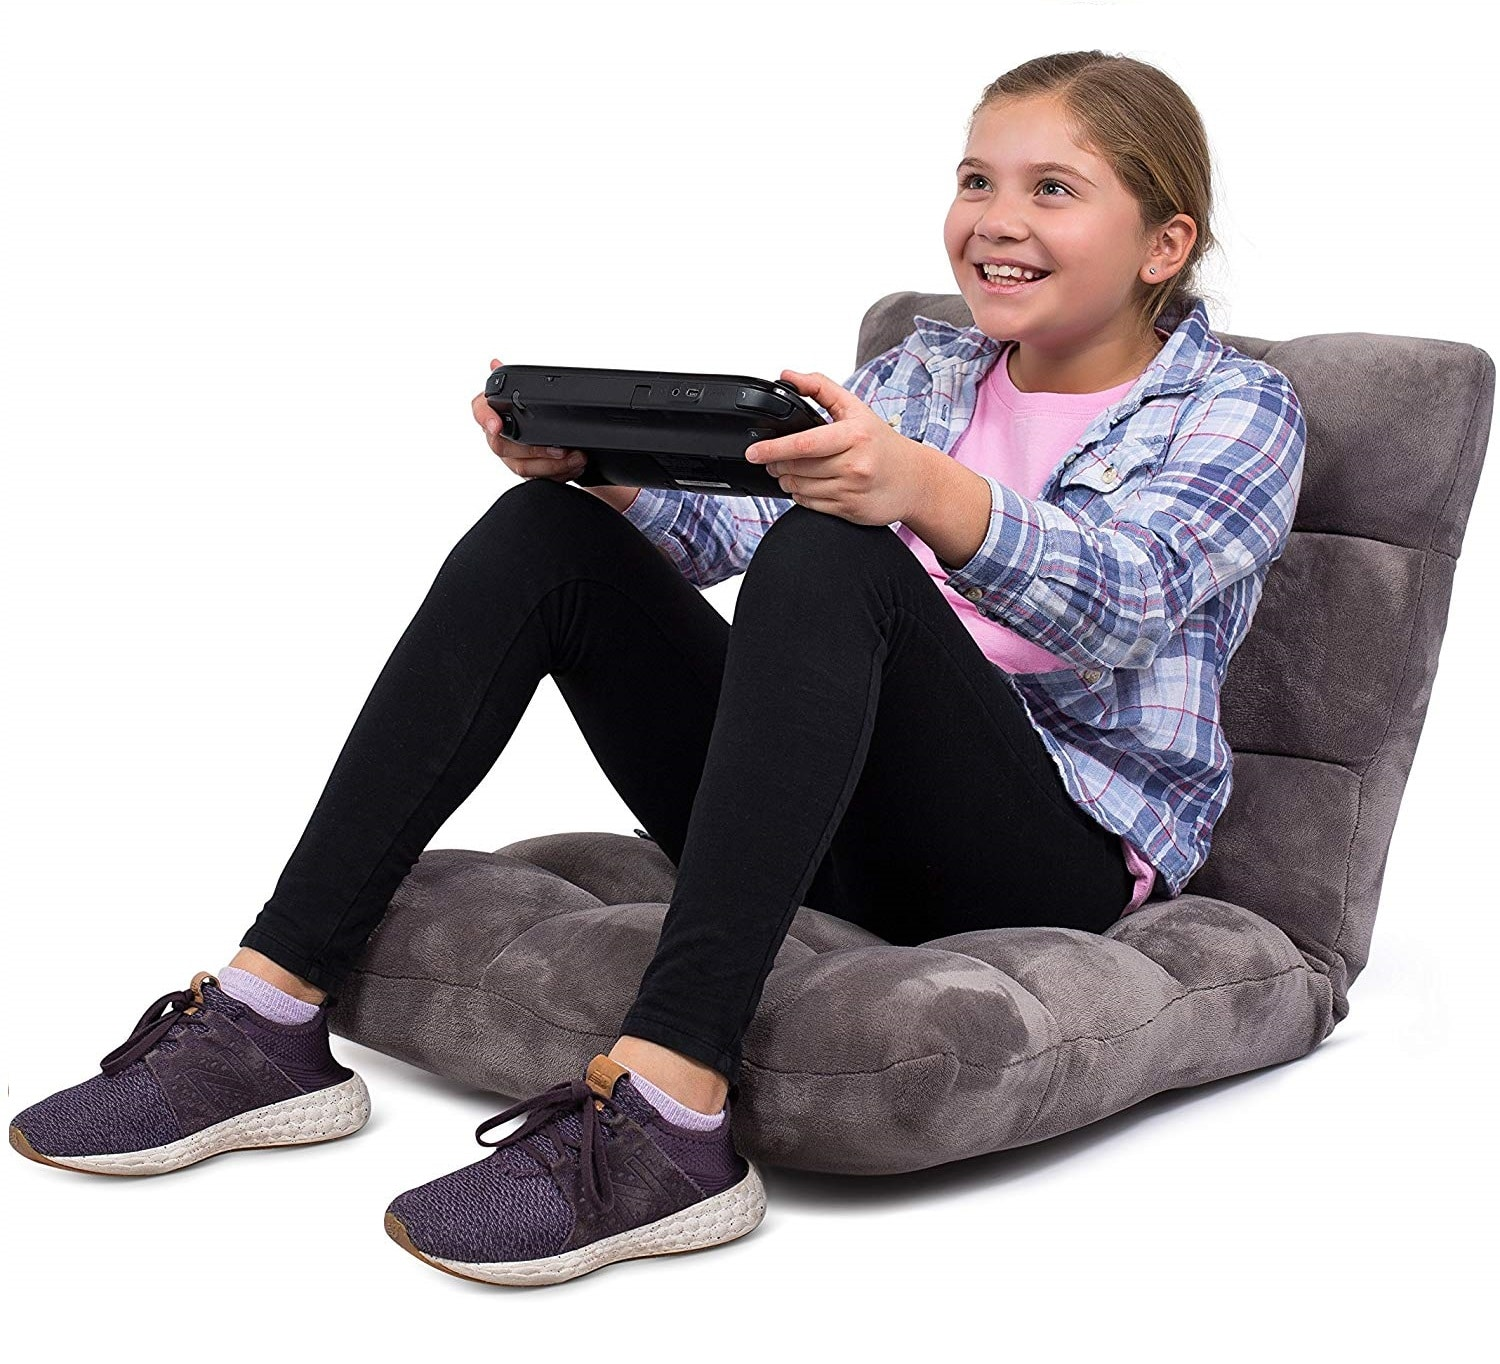 1.BIRDROCK HOME Adjustable 14-Position Memory Foam Floor Chair - Padded Gaming Chair - Comfortable Back Support